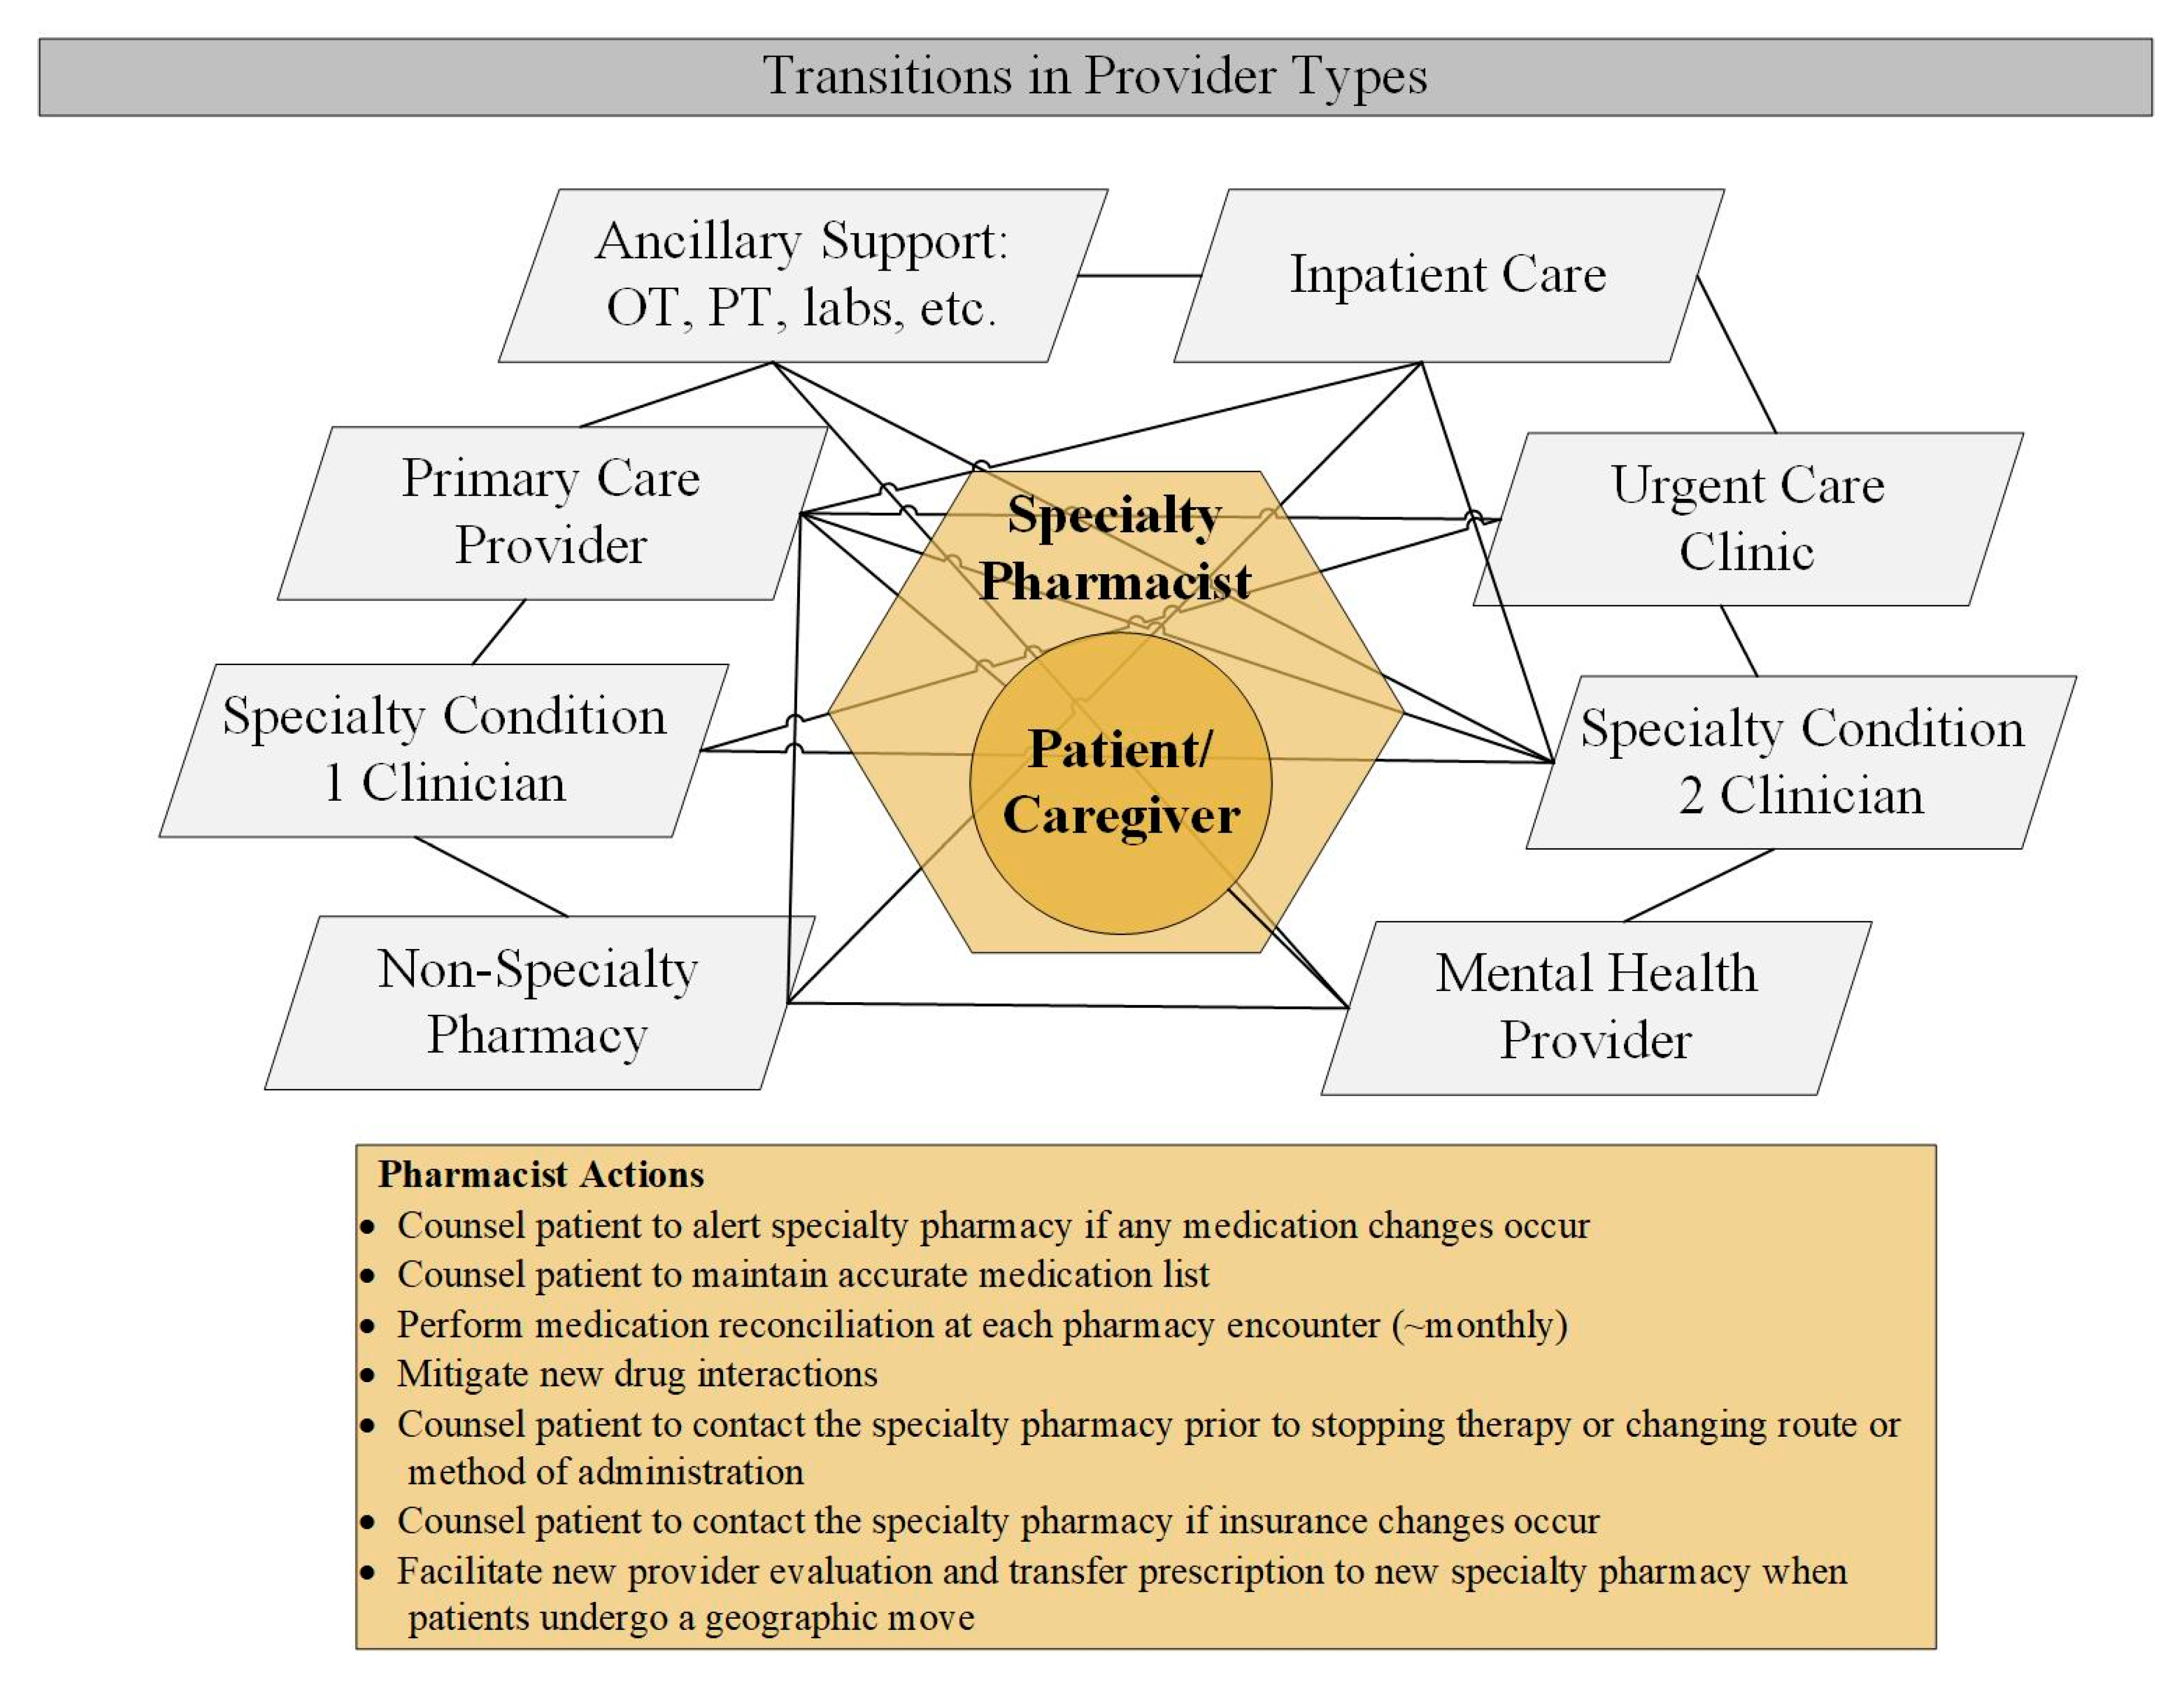 Pharmacy   Free Full-Text   An Integrated Health-System Specialty Pharmacy  Model for Coordinating Transitions of Care: Specialty Medication Challenges  and Specialty Pharmacist Opportunities   HTML